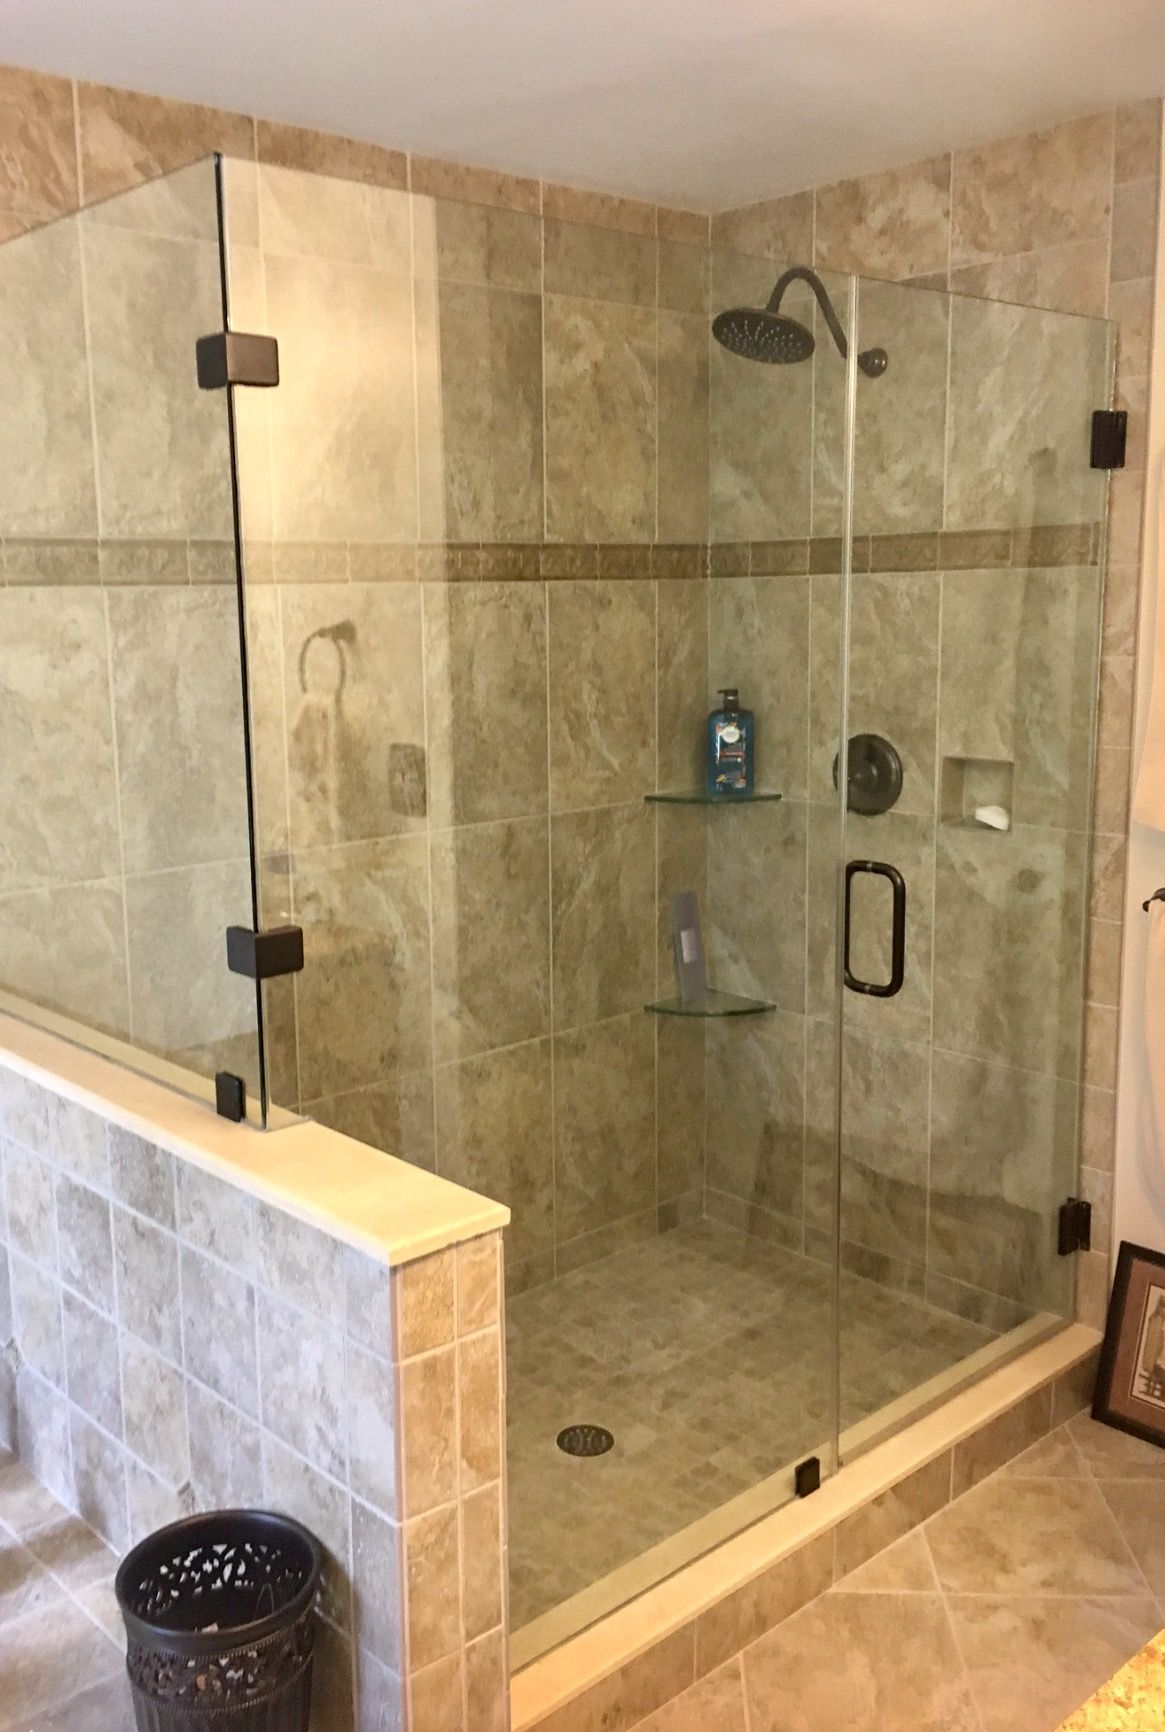 12x24 Grey Wall Tiles Shower Niche 2x2 Mosaic Floor Glass Stone Linear Mosaic Accent Stripe And Tile Shower Niche Shower Tile Small Bathroom With Shower